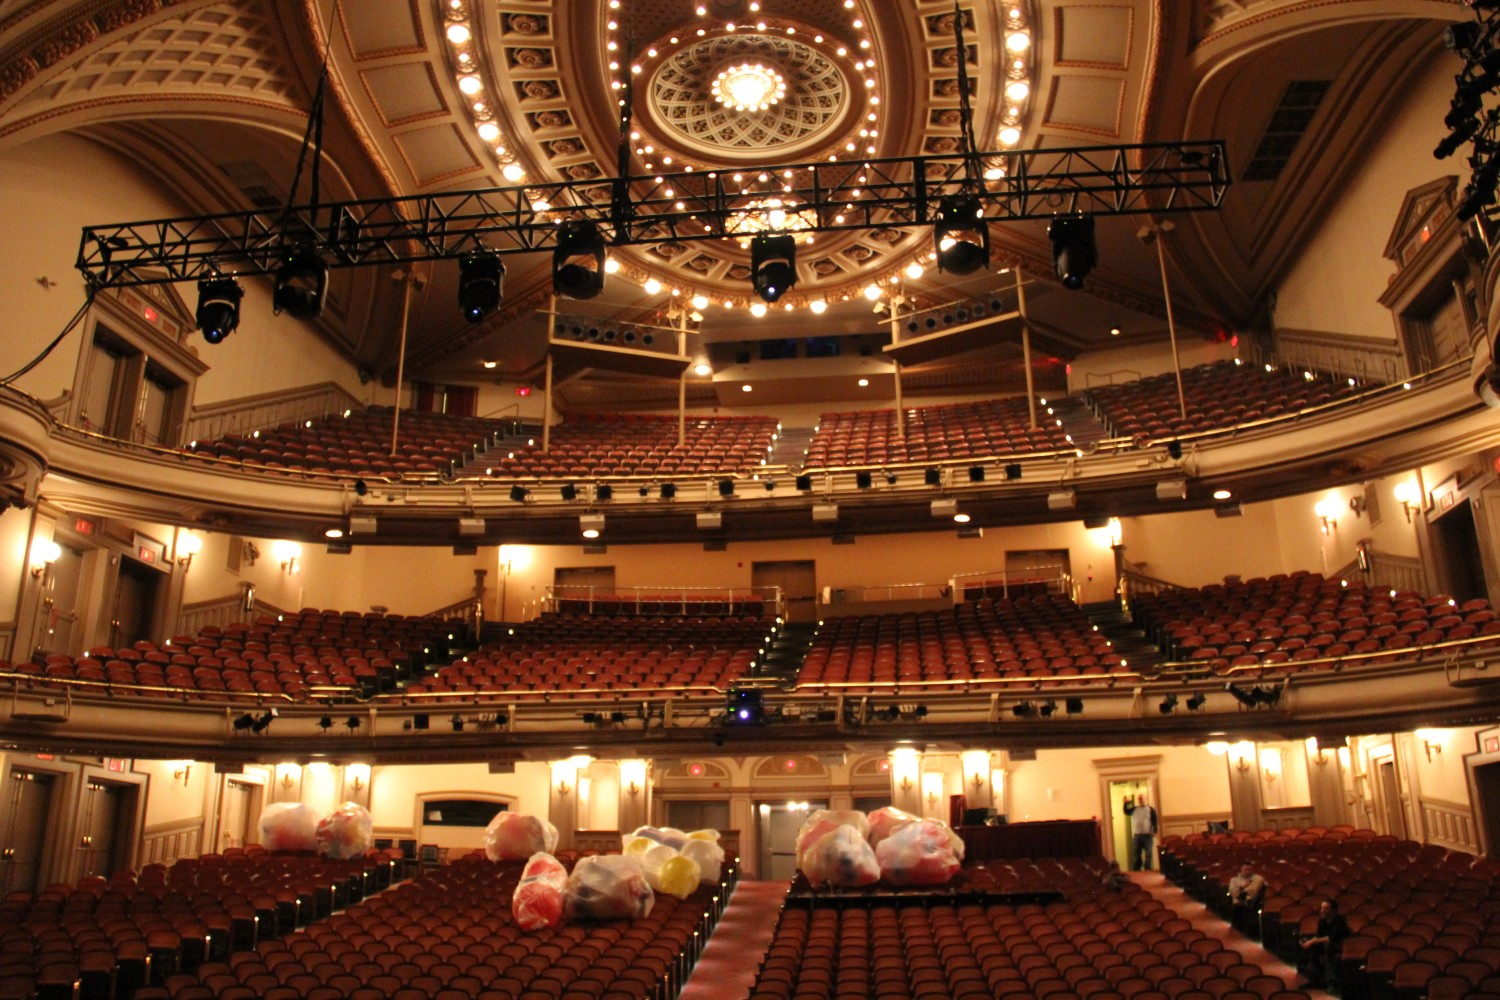 Howard Gilman Opera House, New York